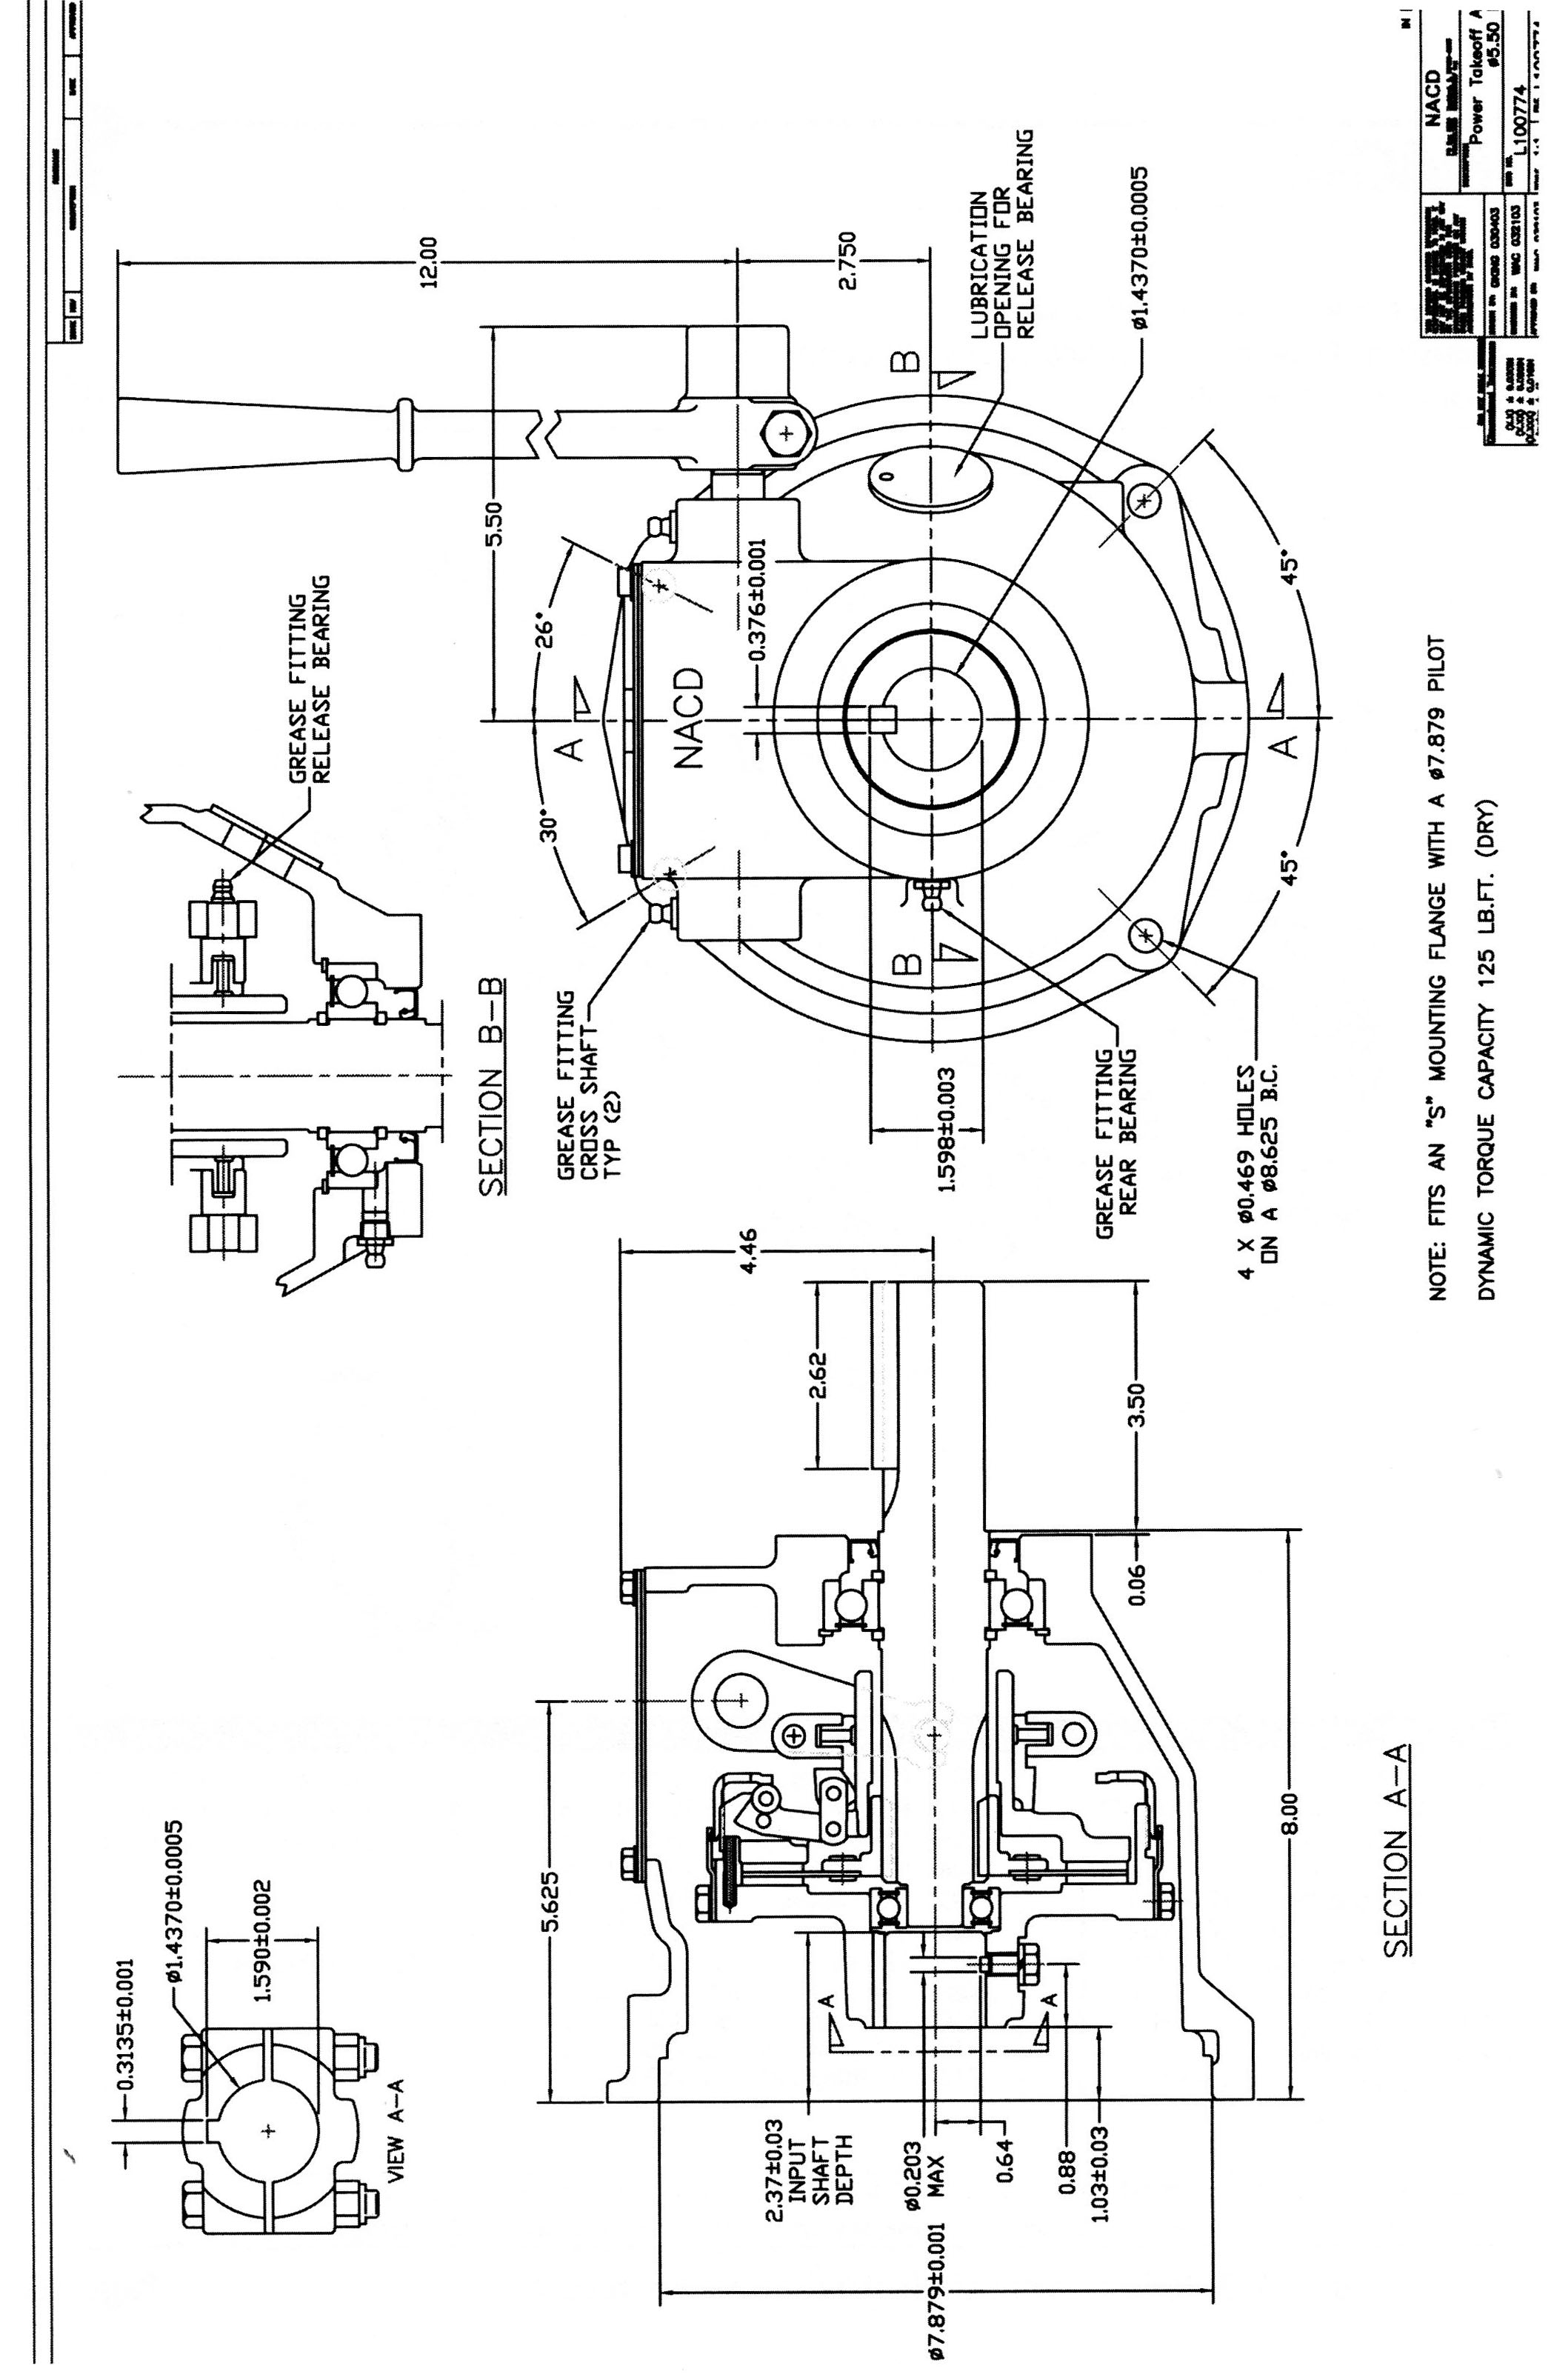 Ottawa Clutch Automotive Industrial Agricultural Clutches 1968 Ford Galaxie Engine Diagram 63 Dimensional Drawings 7 8 Pilot C W 5 Bolt Circle